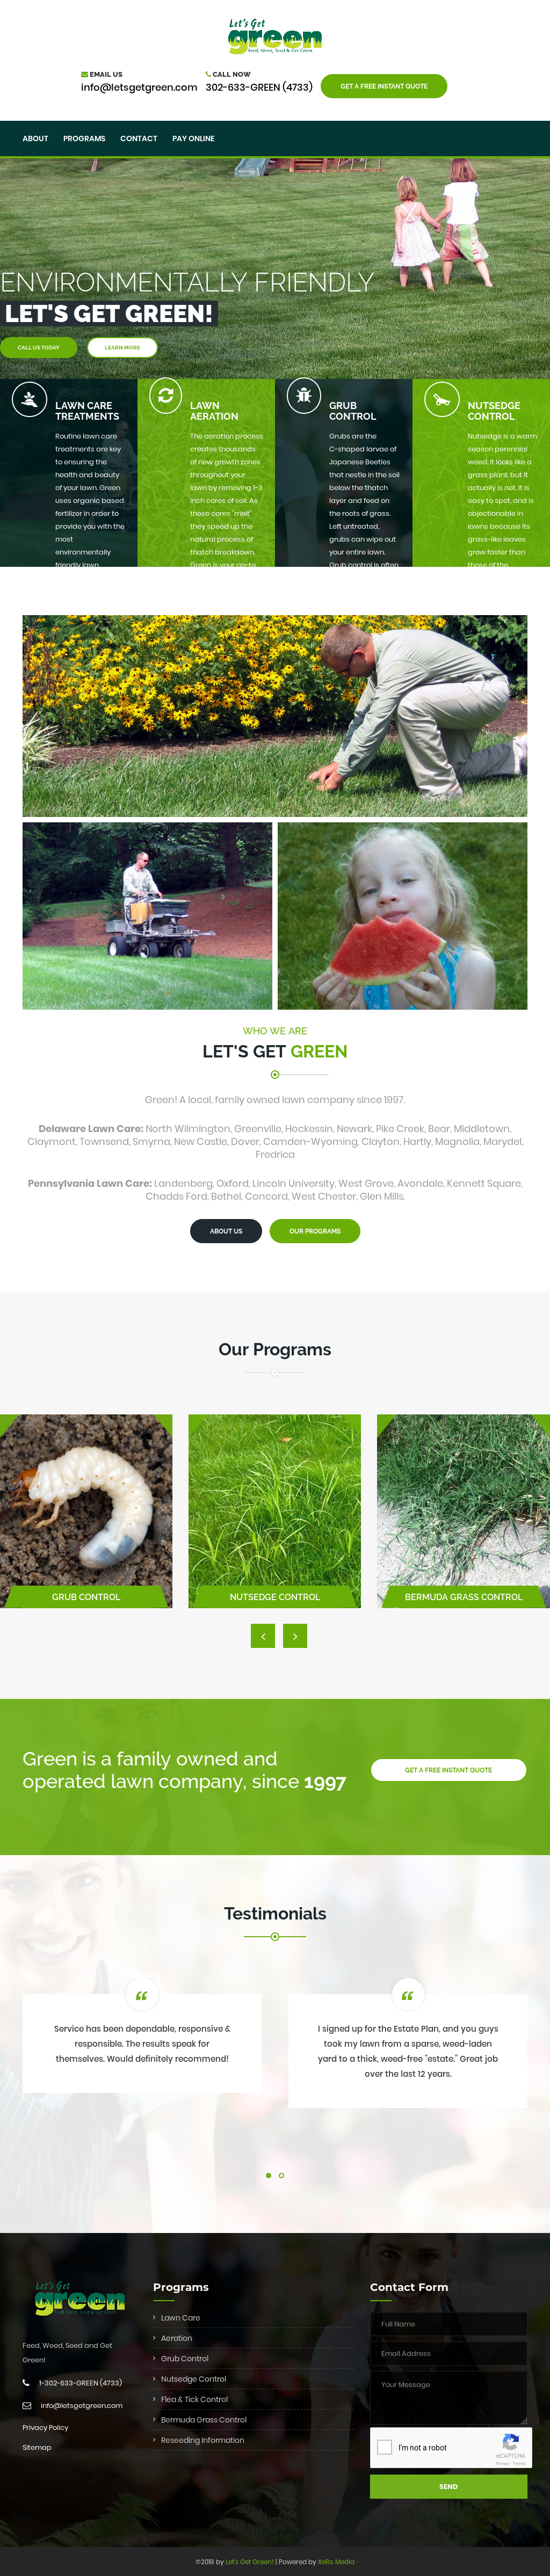 Letsgetgreen Competitors, Revenue and Employees - Owler